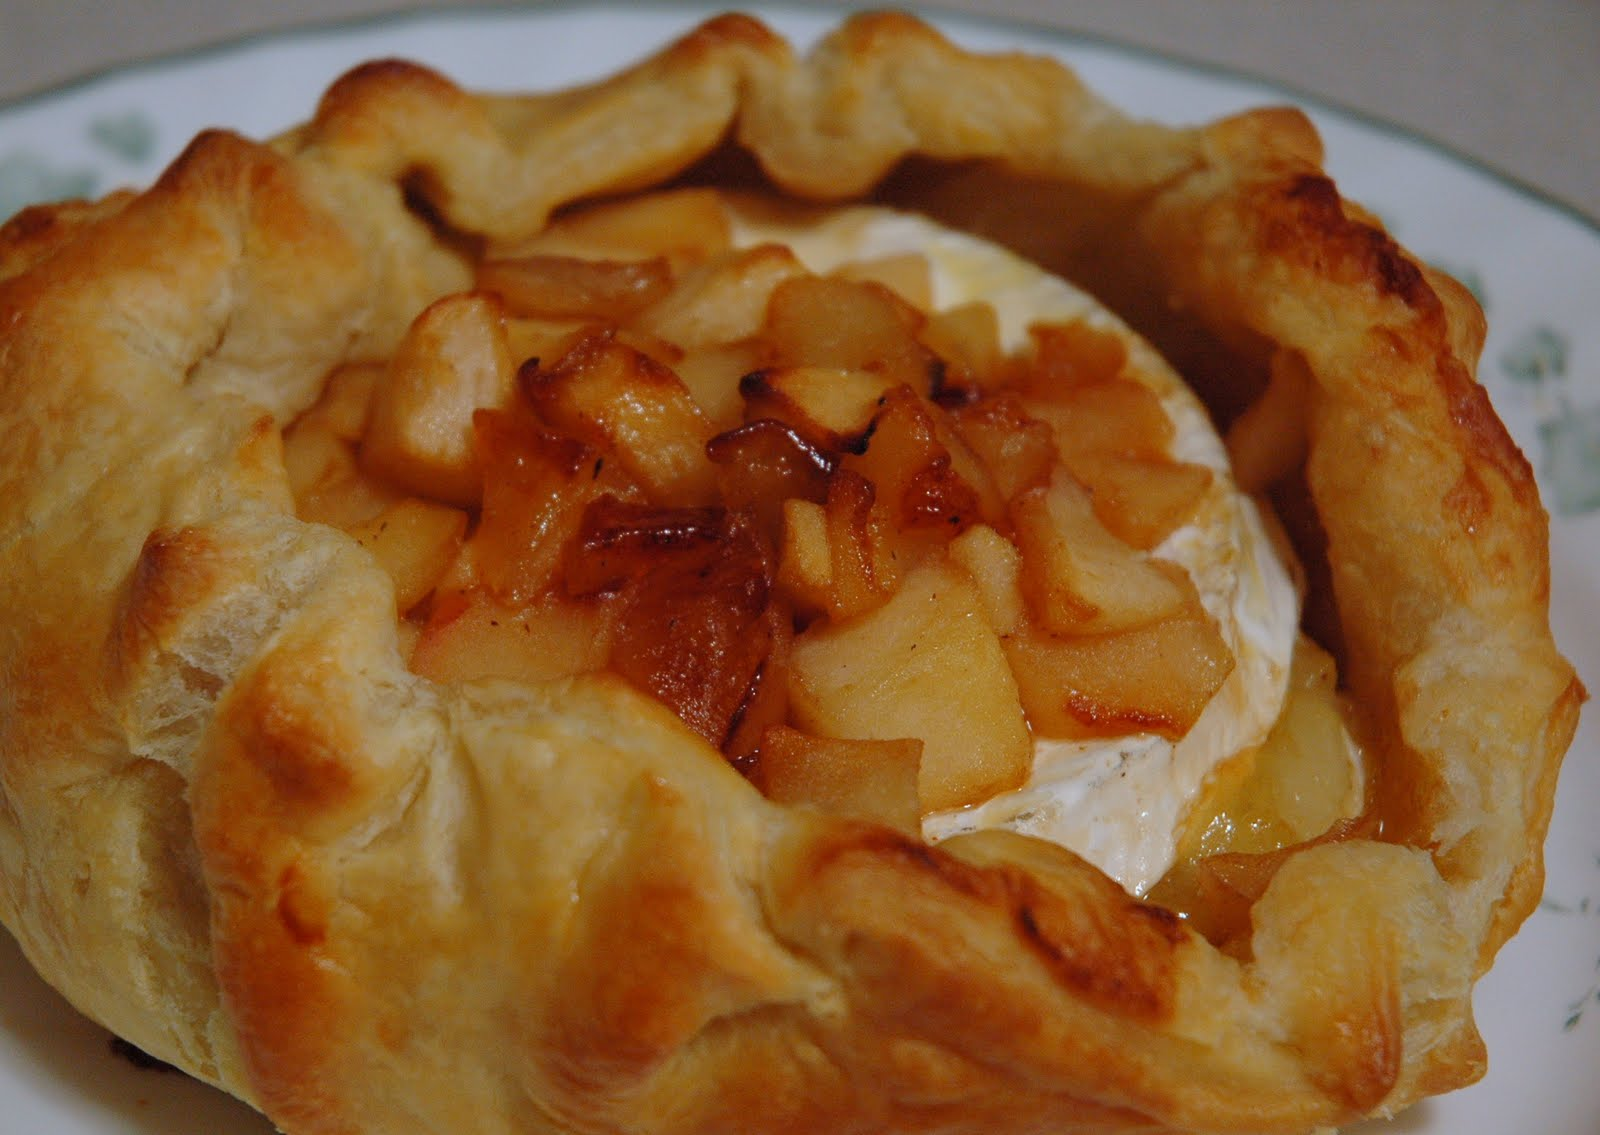 My Life And Good Times: Baked brie with apple compote